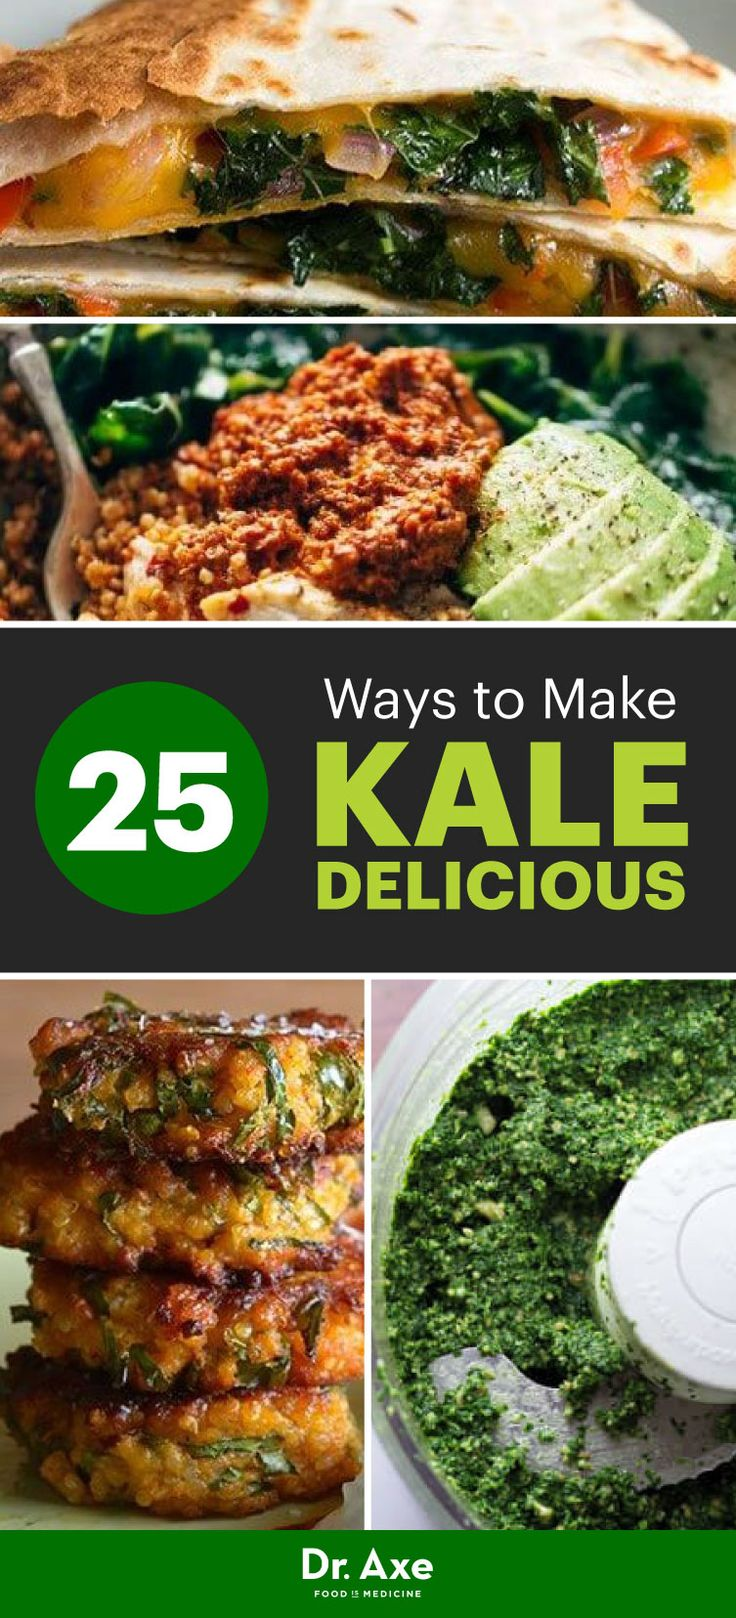 Trendy or not, the health benefits of kale can't be overstated. healthy mom, busy mom, healthy recipes, health and fitness, healthy tips, cooking tips